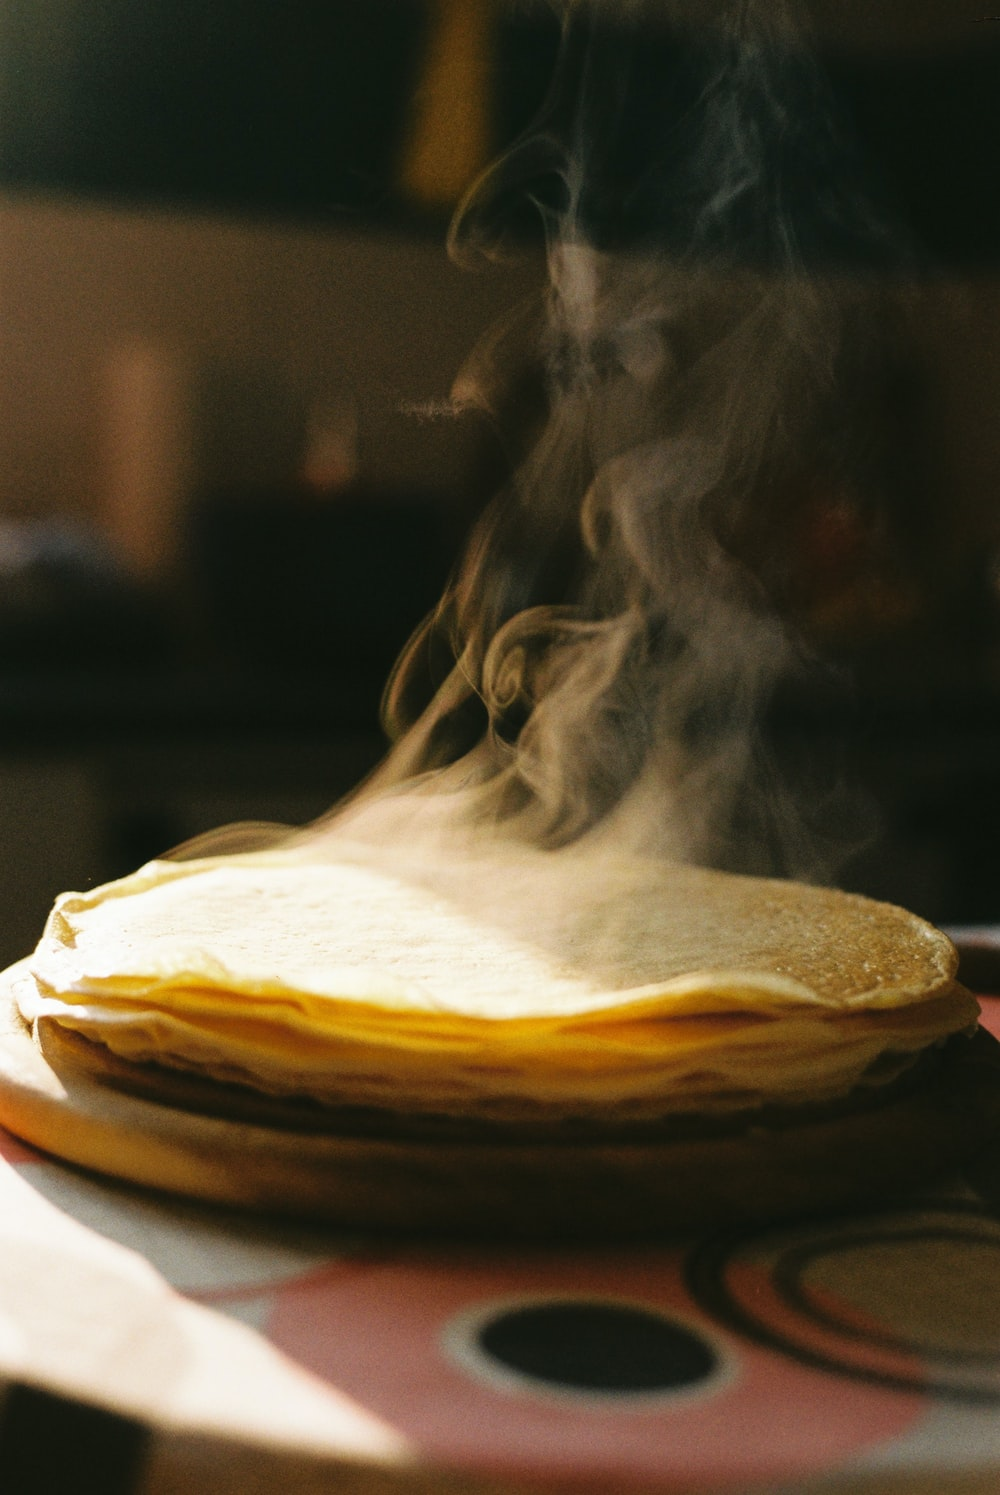 cooked pancake on table